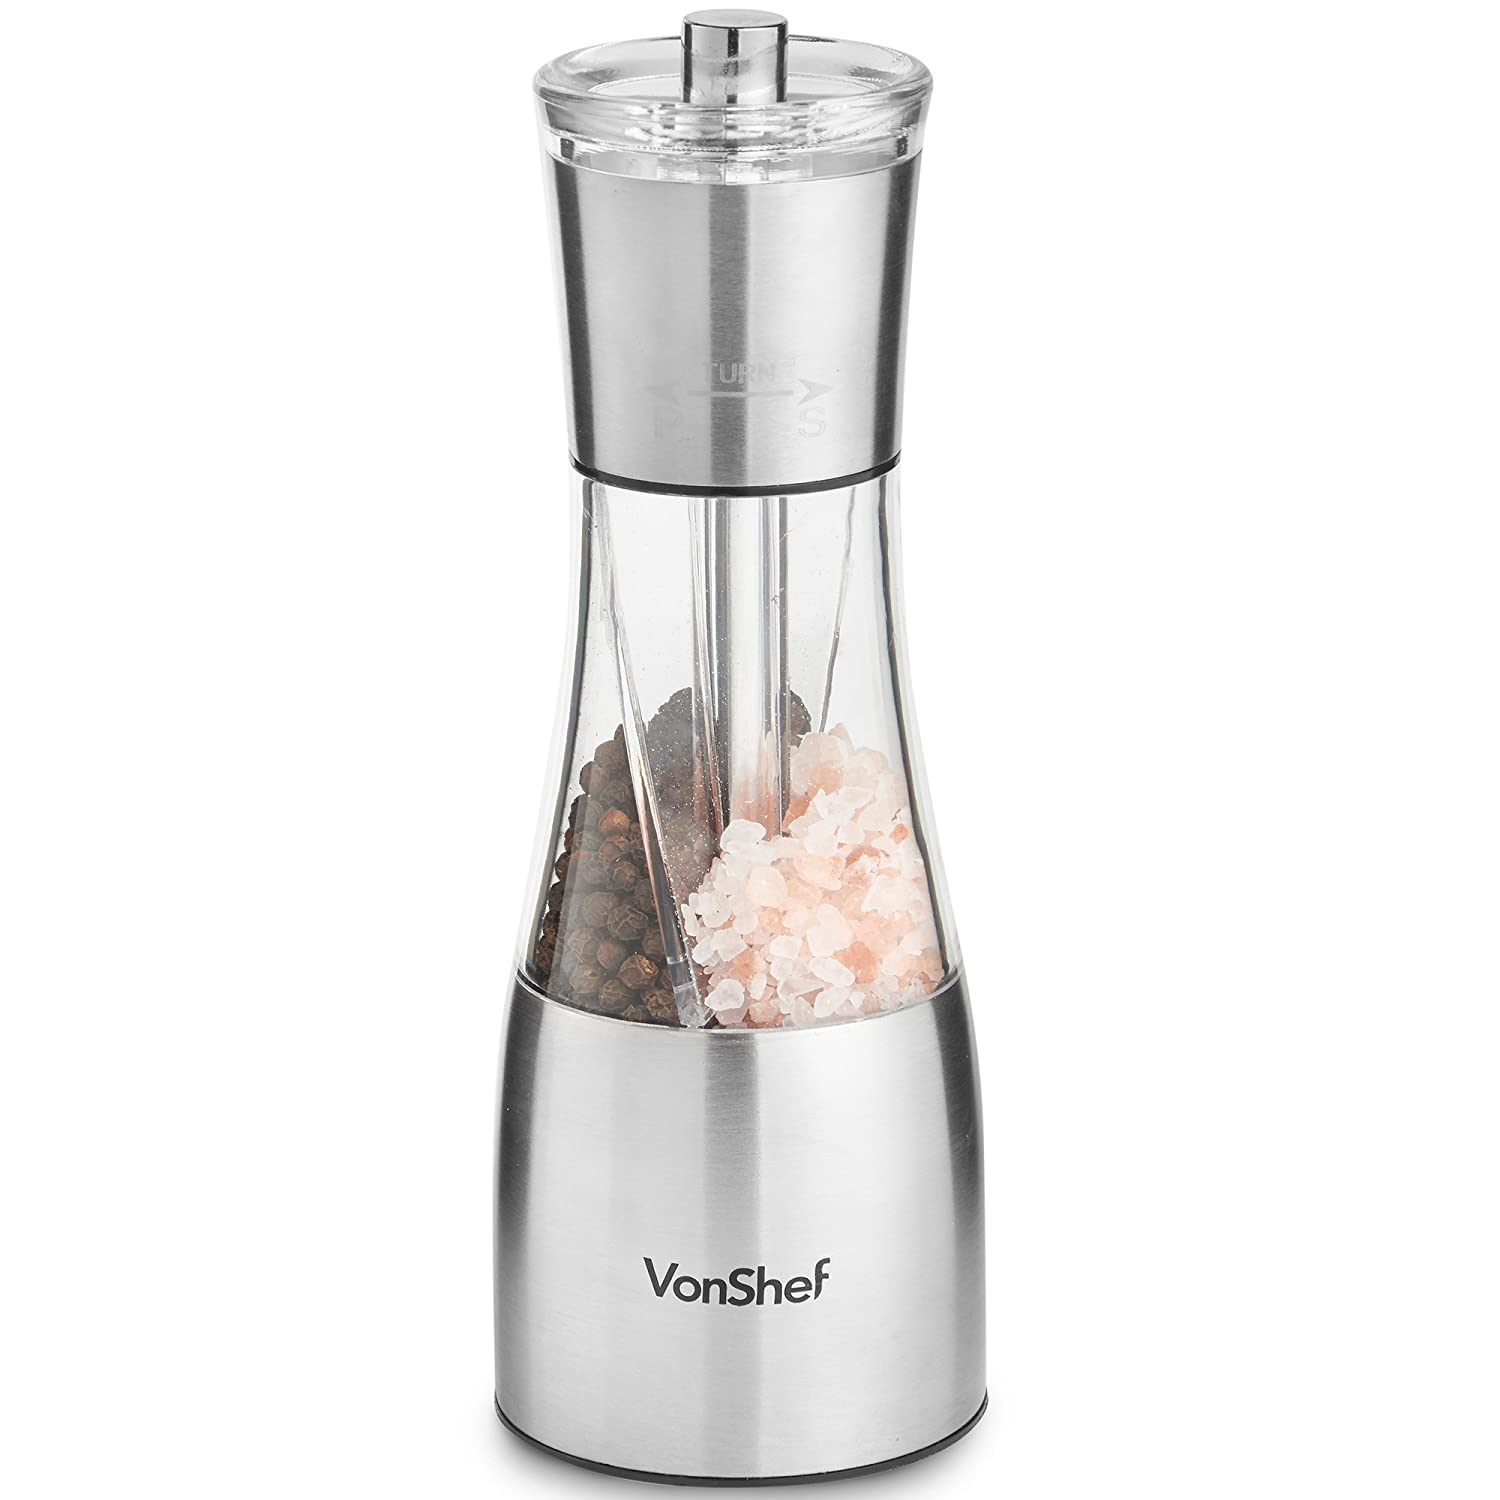 VonShef 2-in-1 Salt and Pepper Grinder Mill with Adjustable Coarseness Control and Easy Refill - Stainless Steel